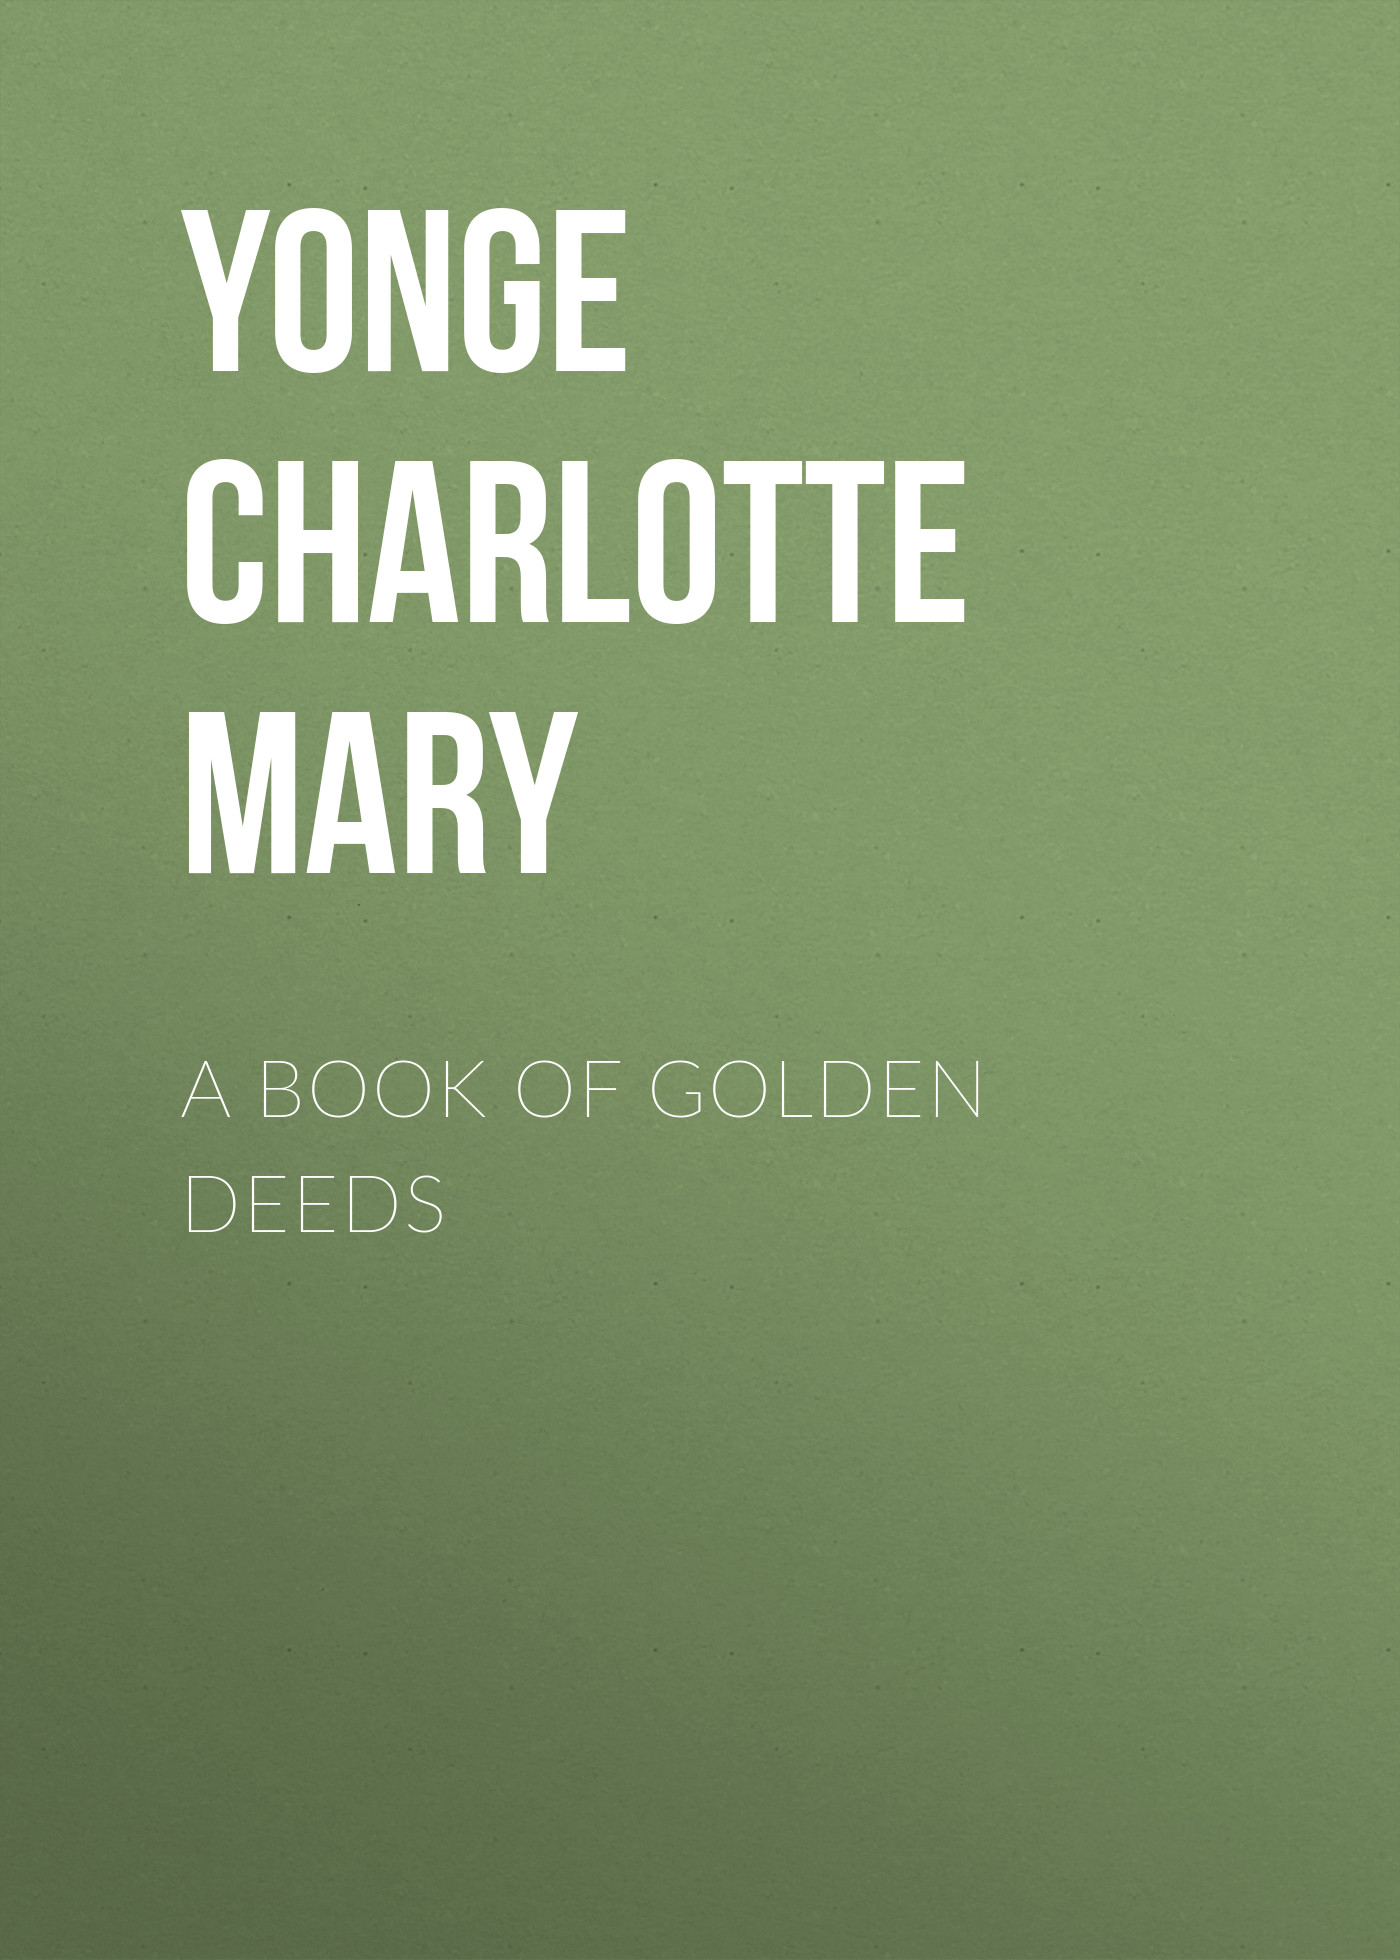 Yonge Charlotte Mary A Book of Golden Deeds yonge charlotte mary countess kate